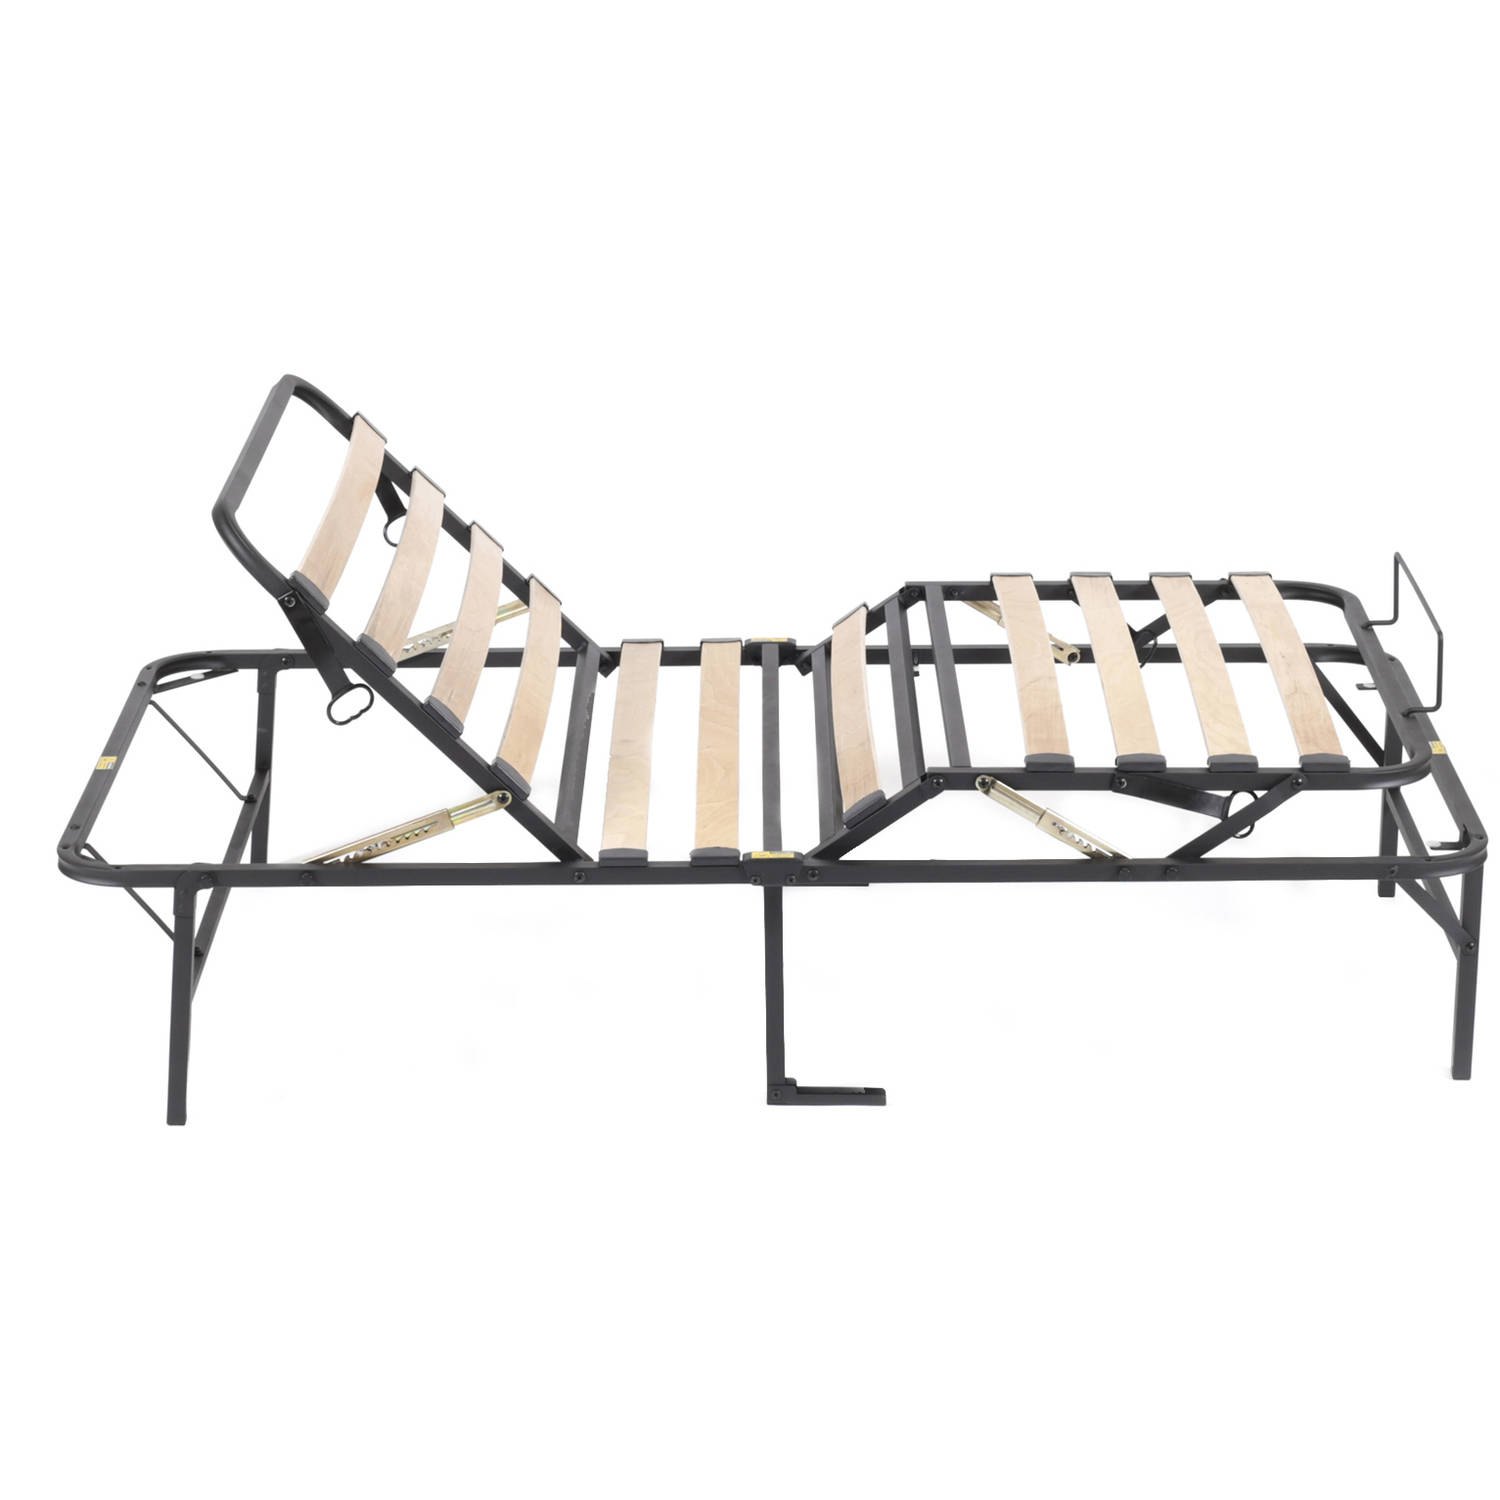 PragmaBed Simple Adjust Head and Foot Wood Slat Manually Adjustable Foundation